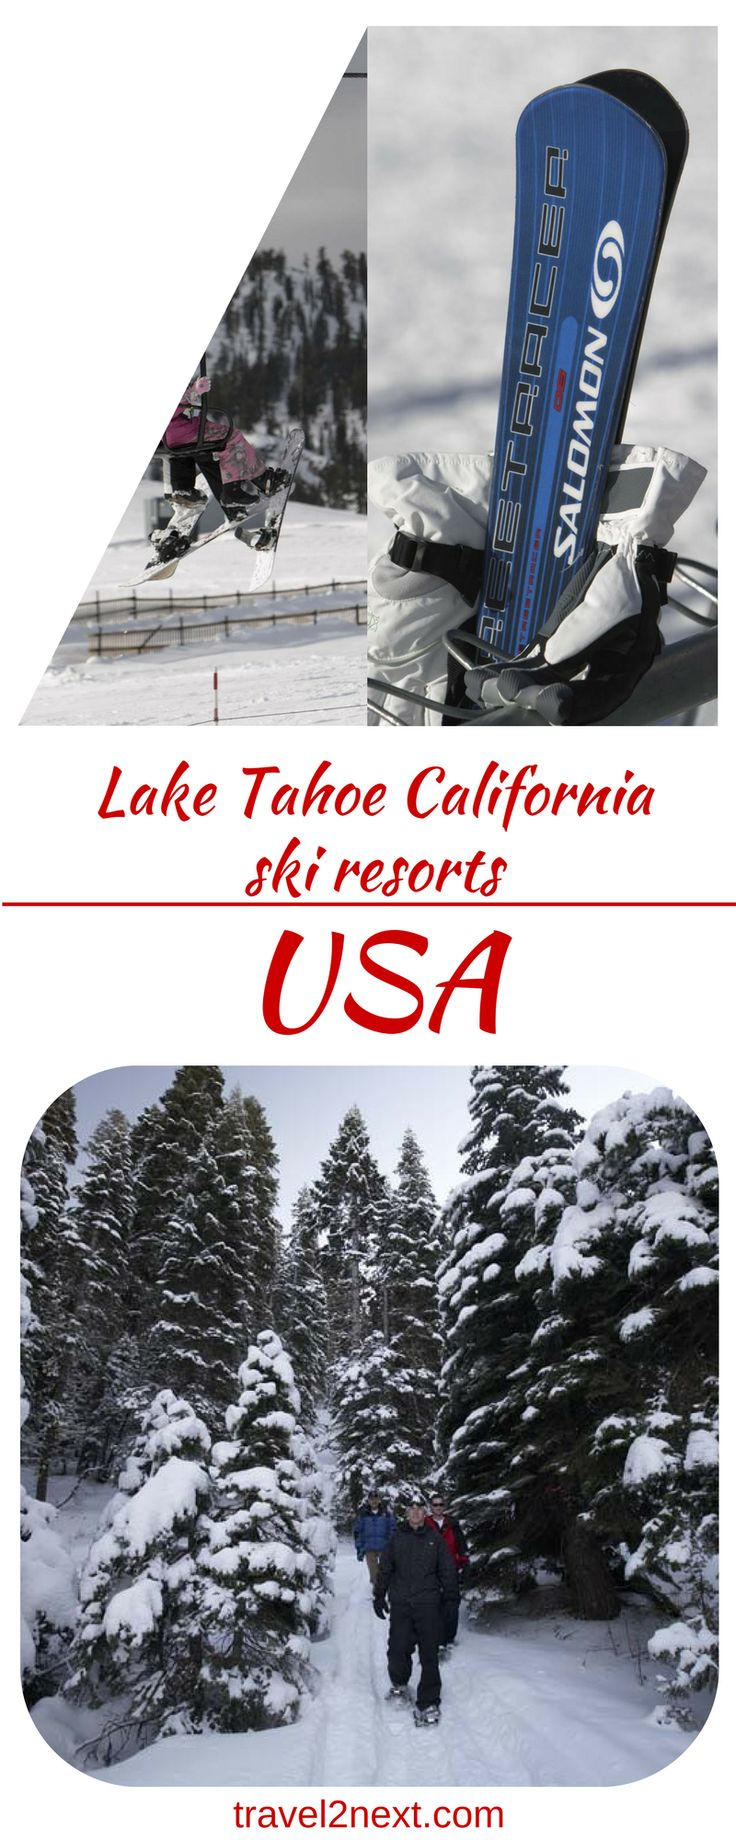 Lake Tahoe California – ski resorts. For most travellers, California conjures images of sand, sun and surf.